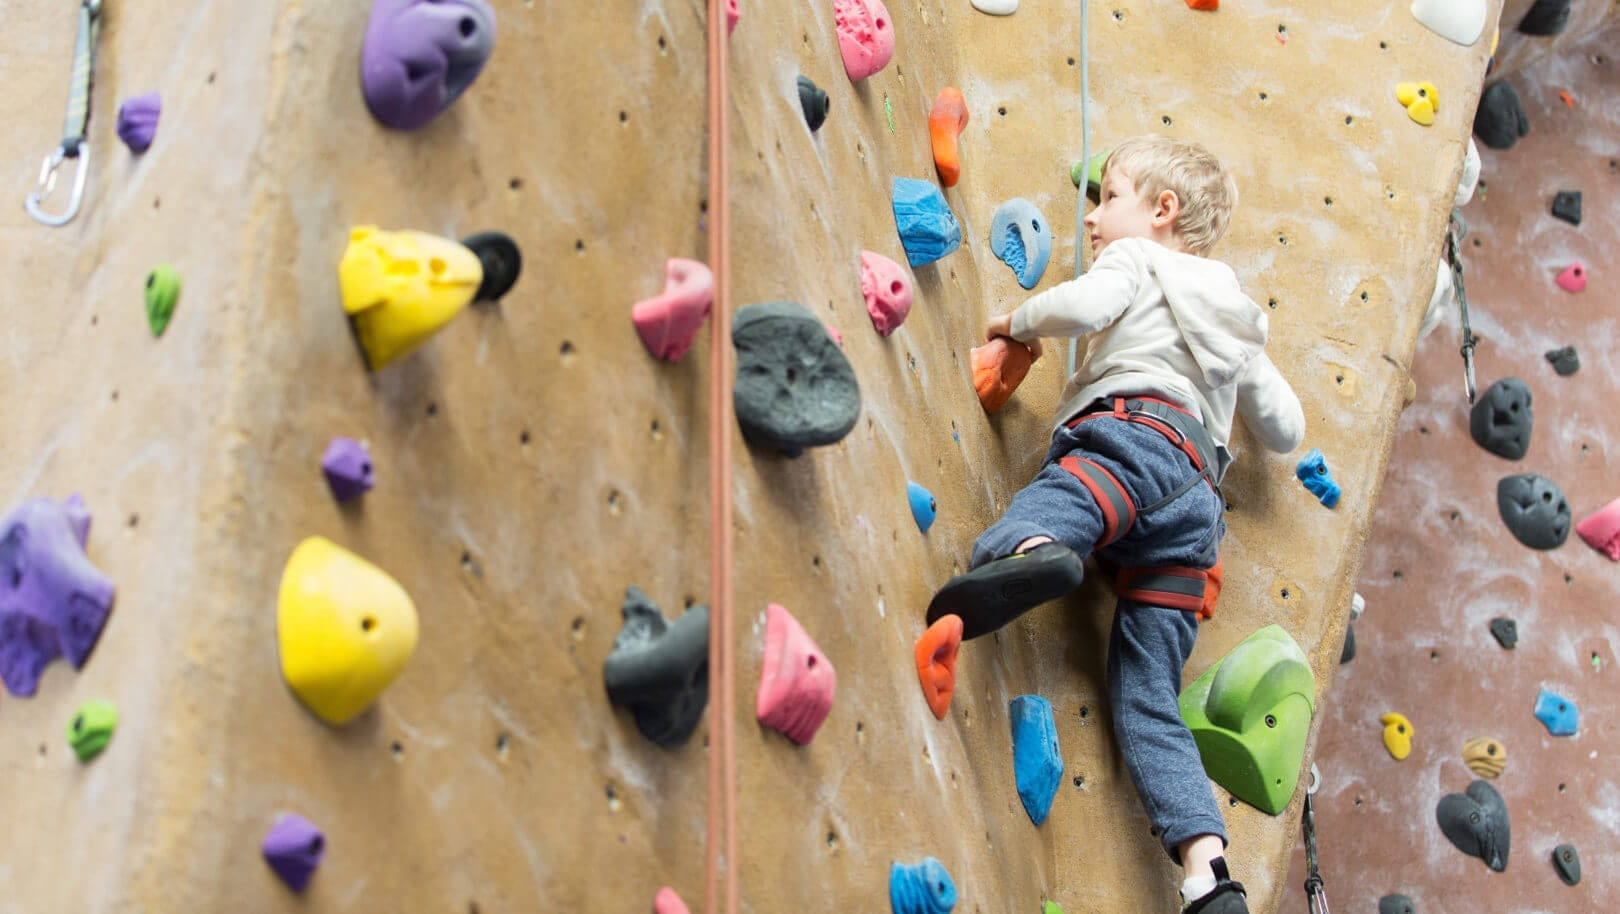 Plastic Wedding Bands >> The Best Indoor Rock Climbing Spots in NJ - Best of NJ: NJ Lifestyle Guides, Features, Events ...